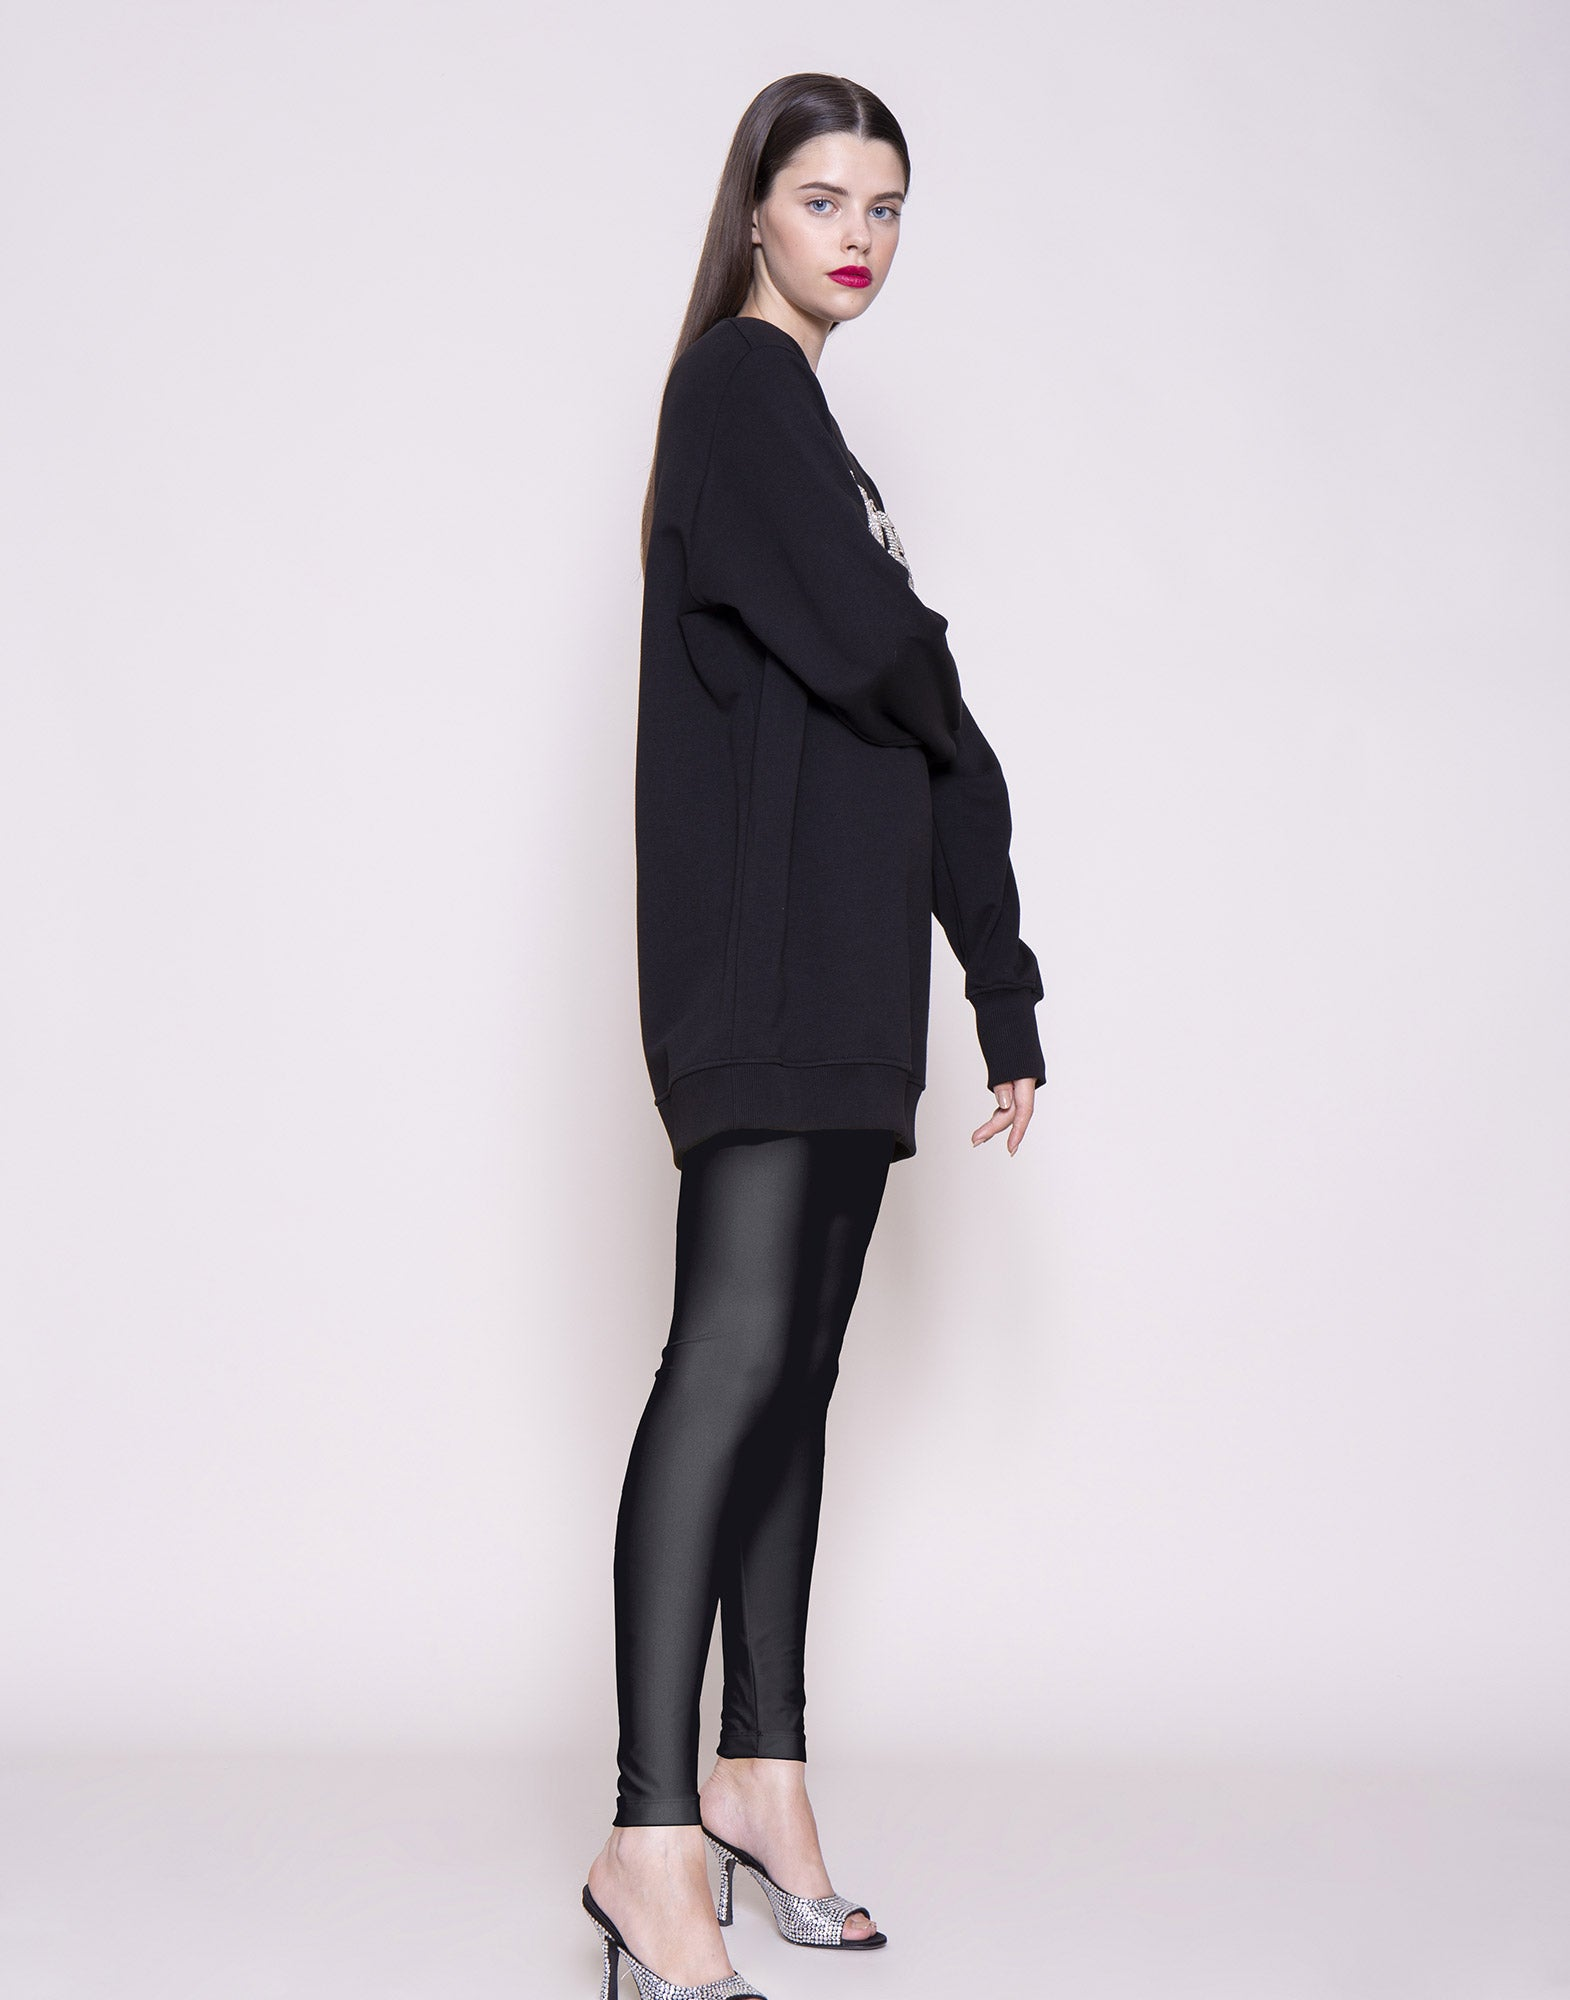 Black Lycra leggings | NEW ARRIVALS